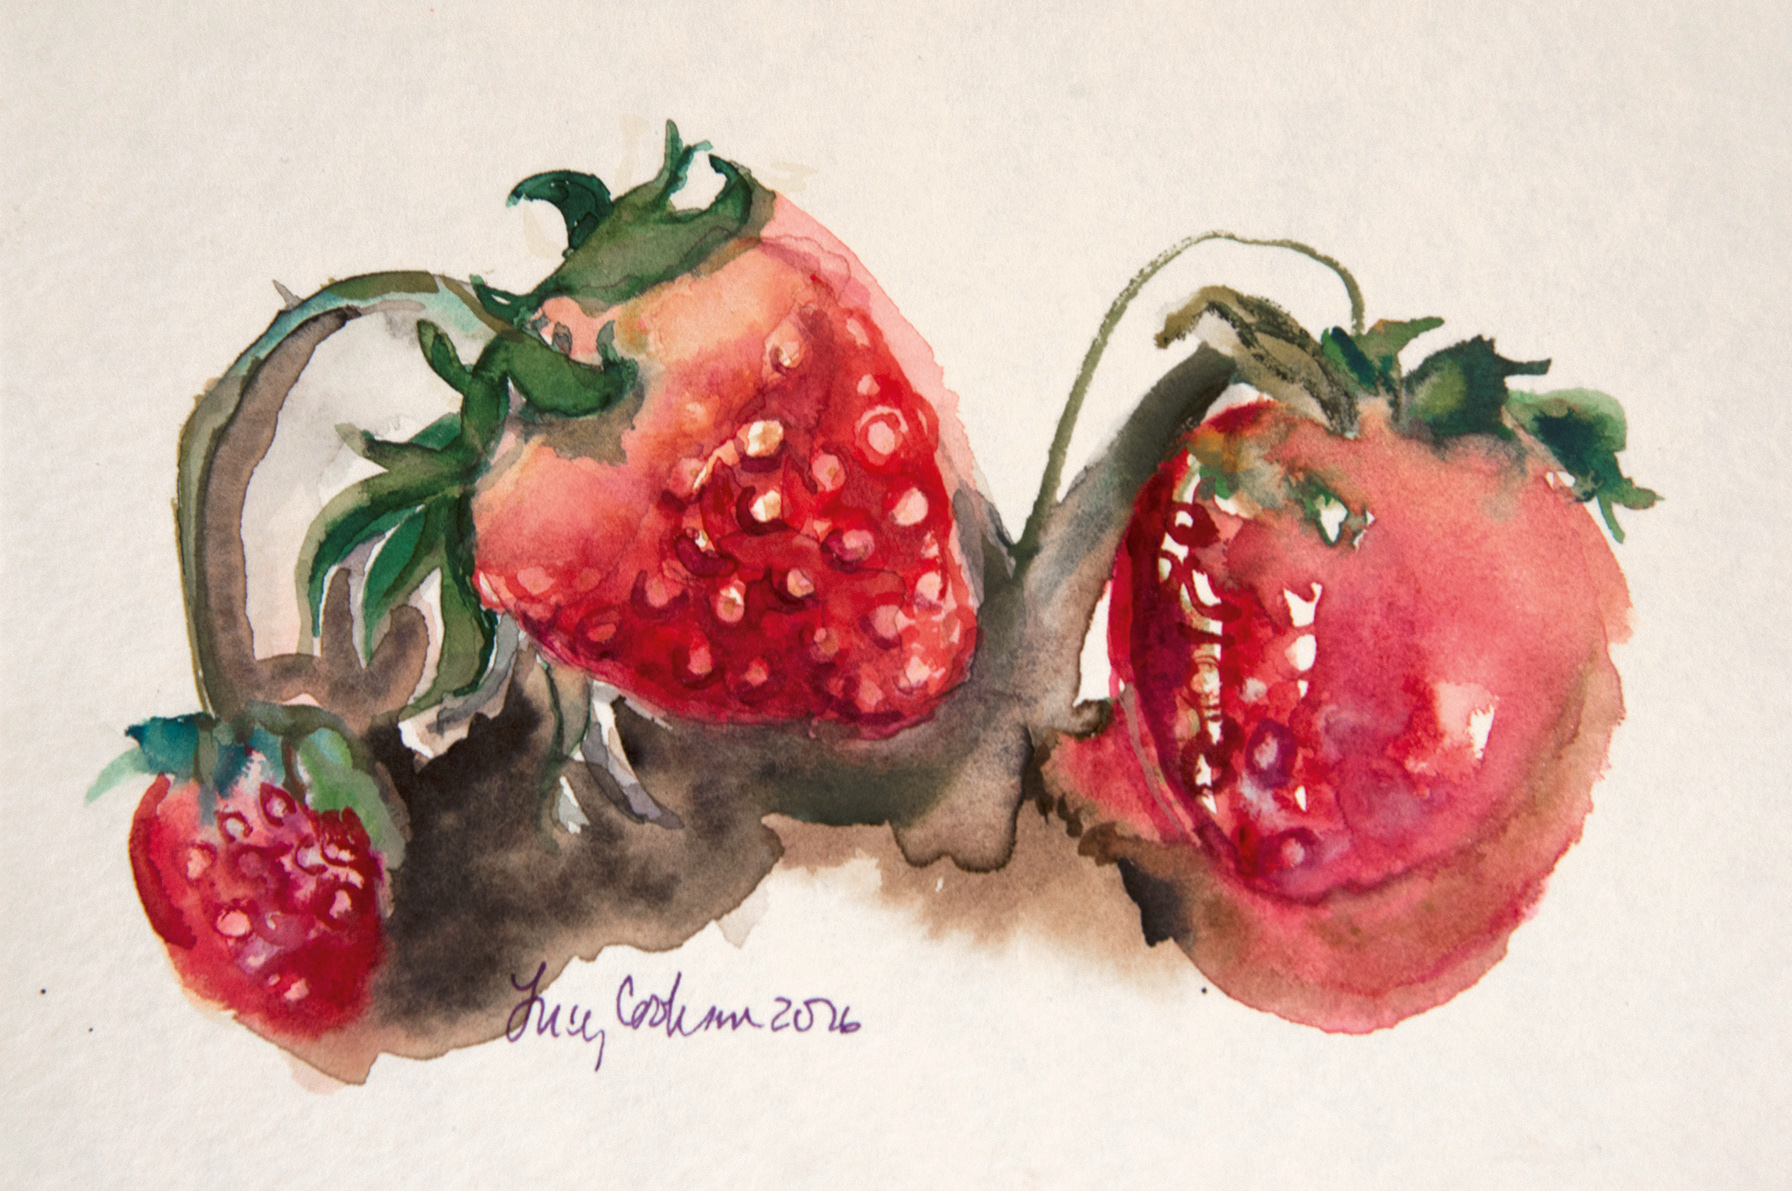 Strawberries, 2016, Watercolor on paper, 7 x 9 in.